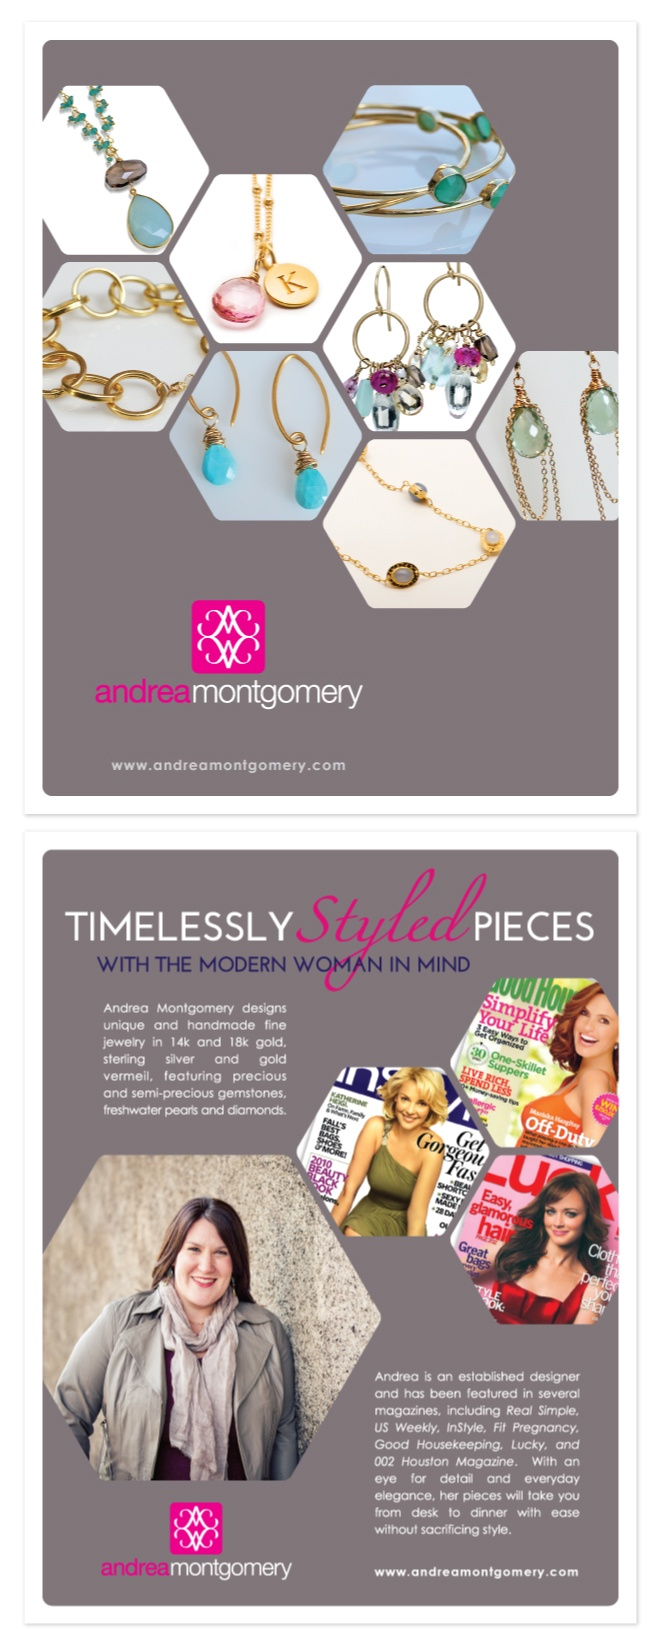 Brochure design for a very talented jewelry designer in San Francisco. Andrea Montgomery! Check out more of her designs at www.andreamontgomery.com Design by DesAutels Designs.